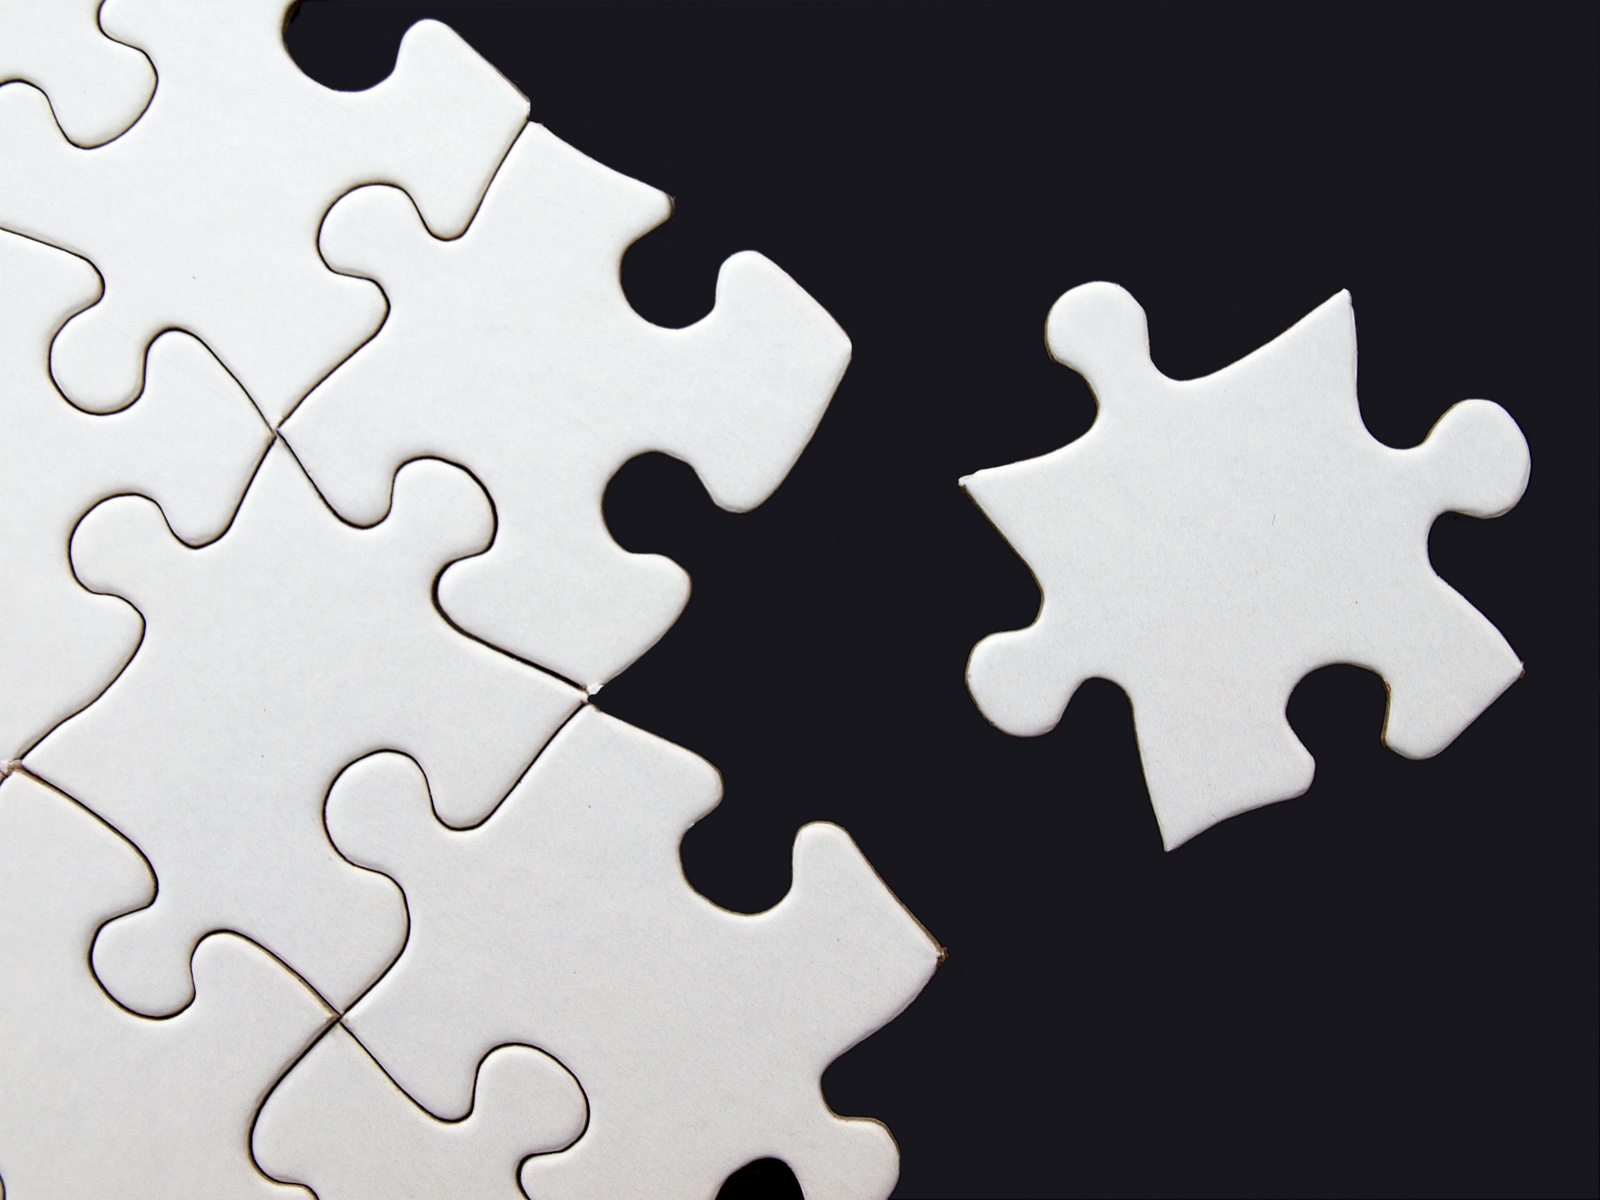 blank puzzle free ppt backgrounds image vector clip art online.